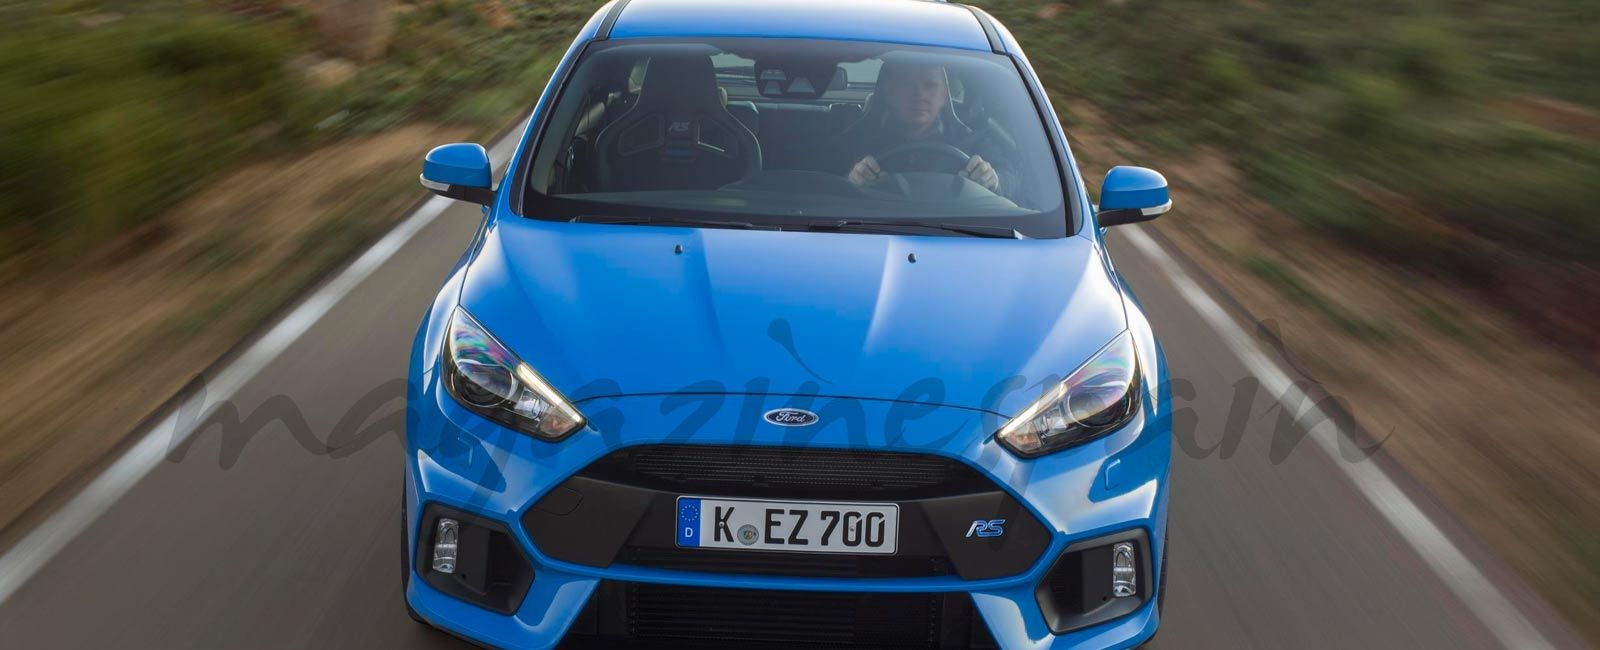 Ford Focus Rs Coche Del Ano 2016 Ford Focus Ford Y Coches